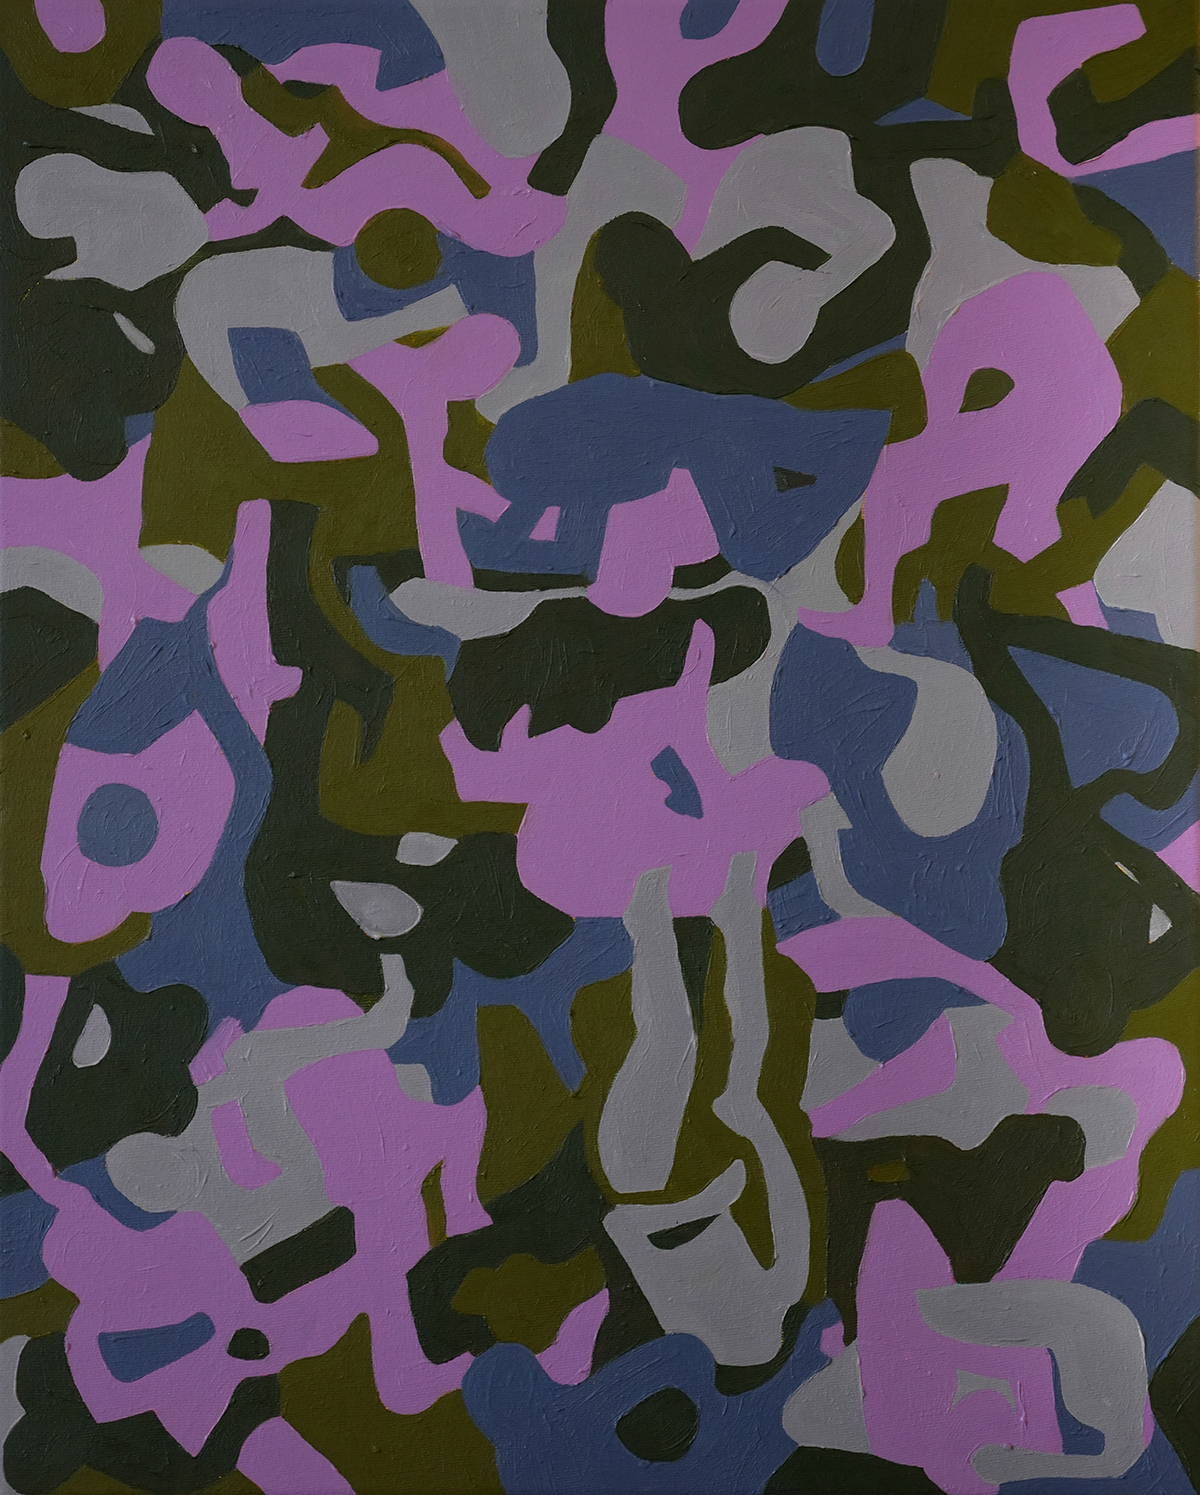 untitled camo 1, 16in x 20in, oil on canvasweb.jpg